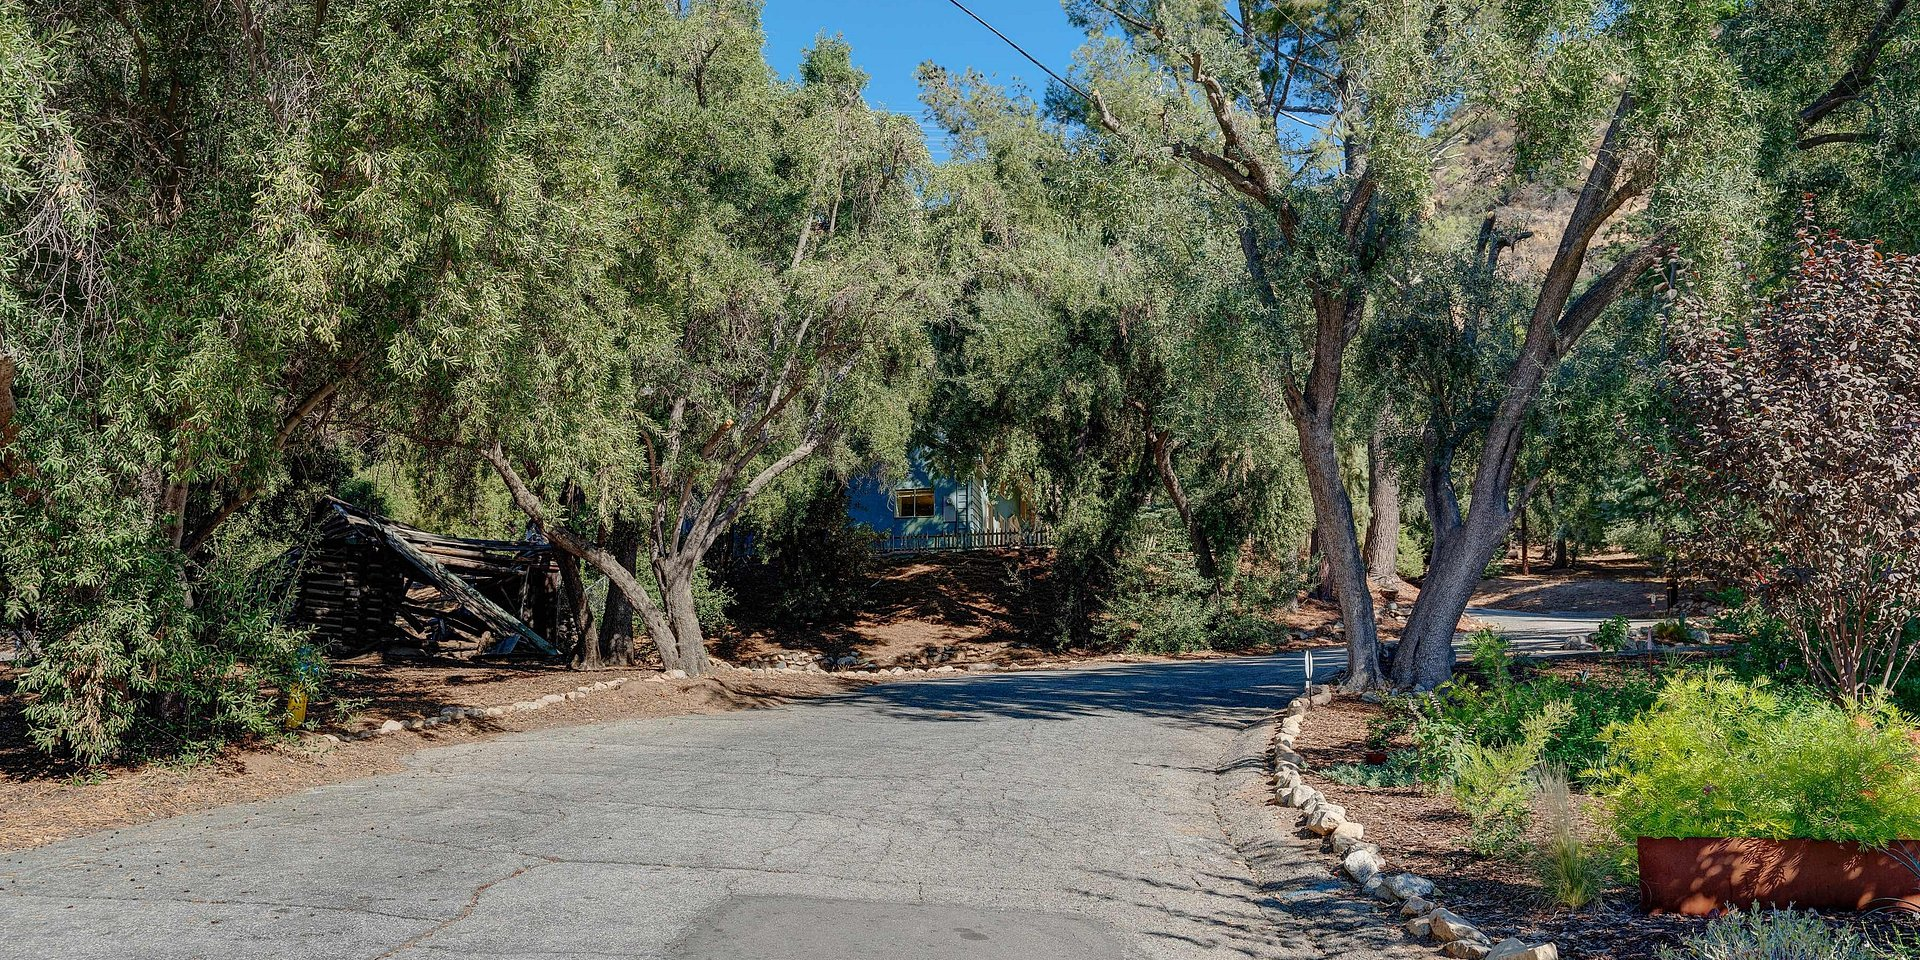 Coldwell Banker Realty Lists an Altadena Property Formerly Part of Camp Huntington for $2.7 Million